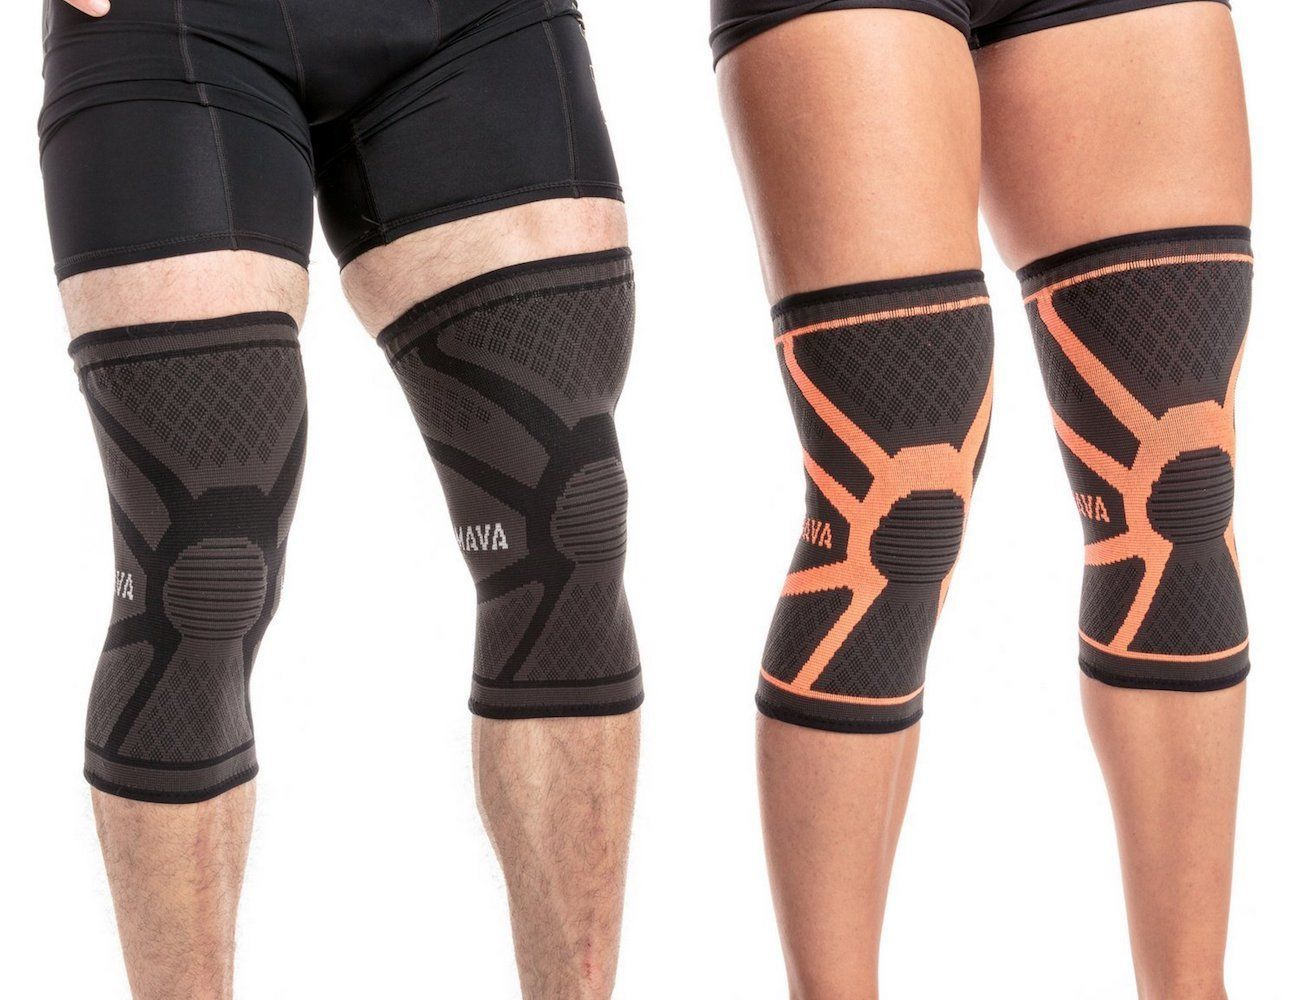 Mava Sports Knee Compression Sleeve